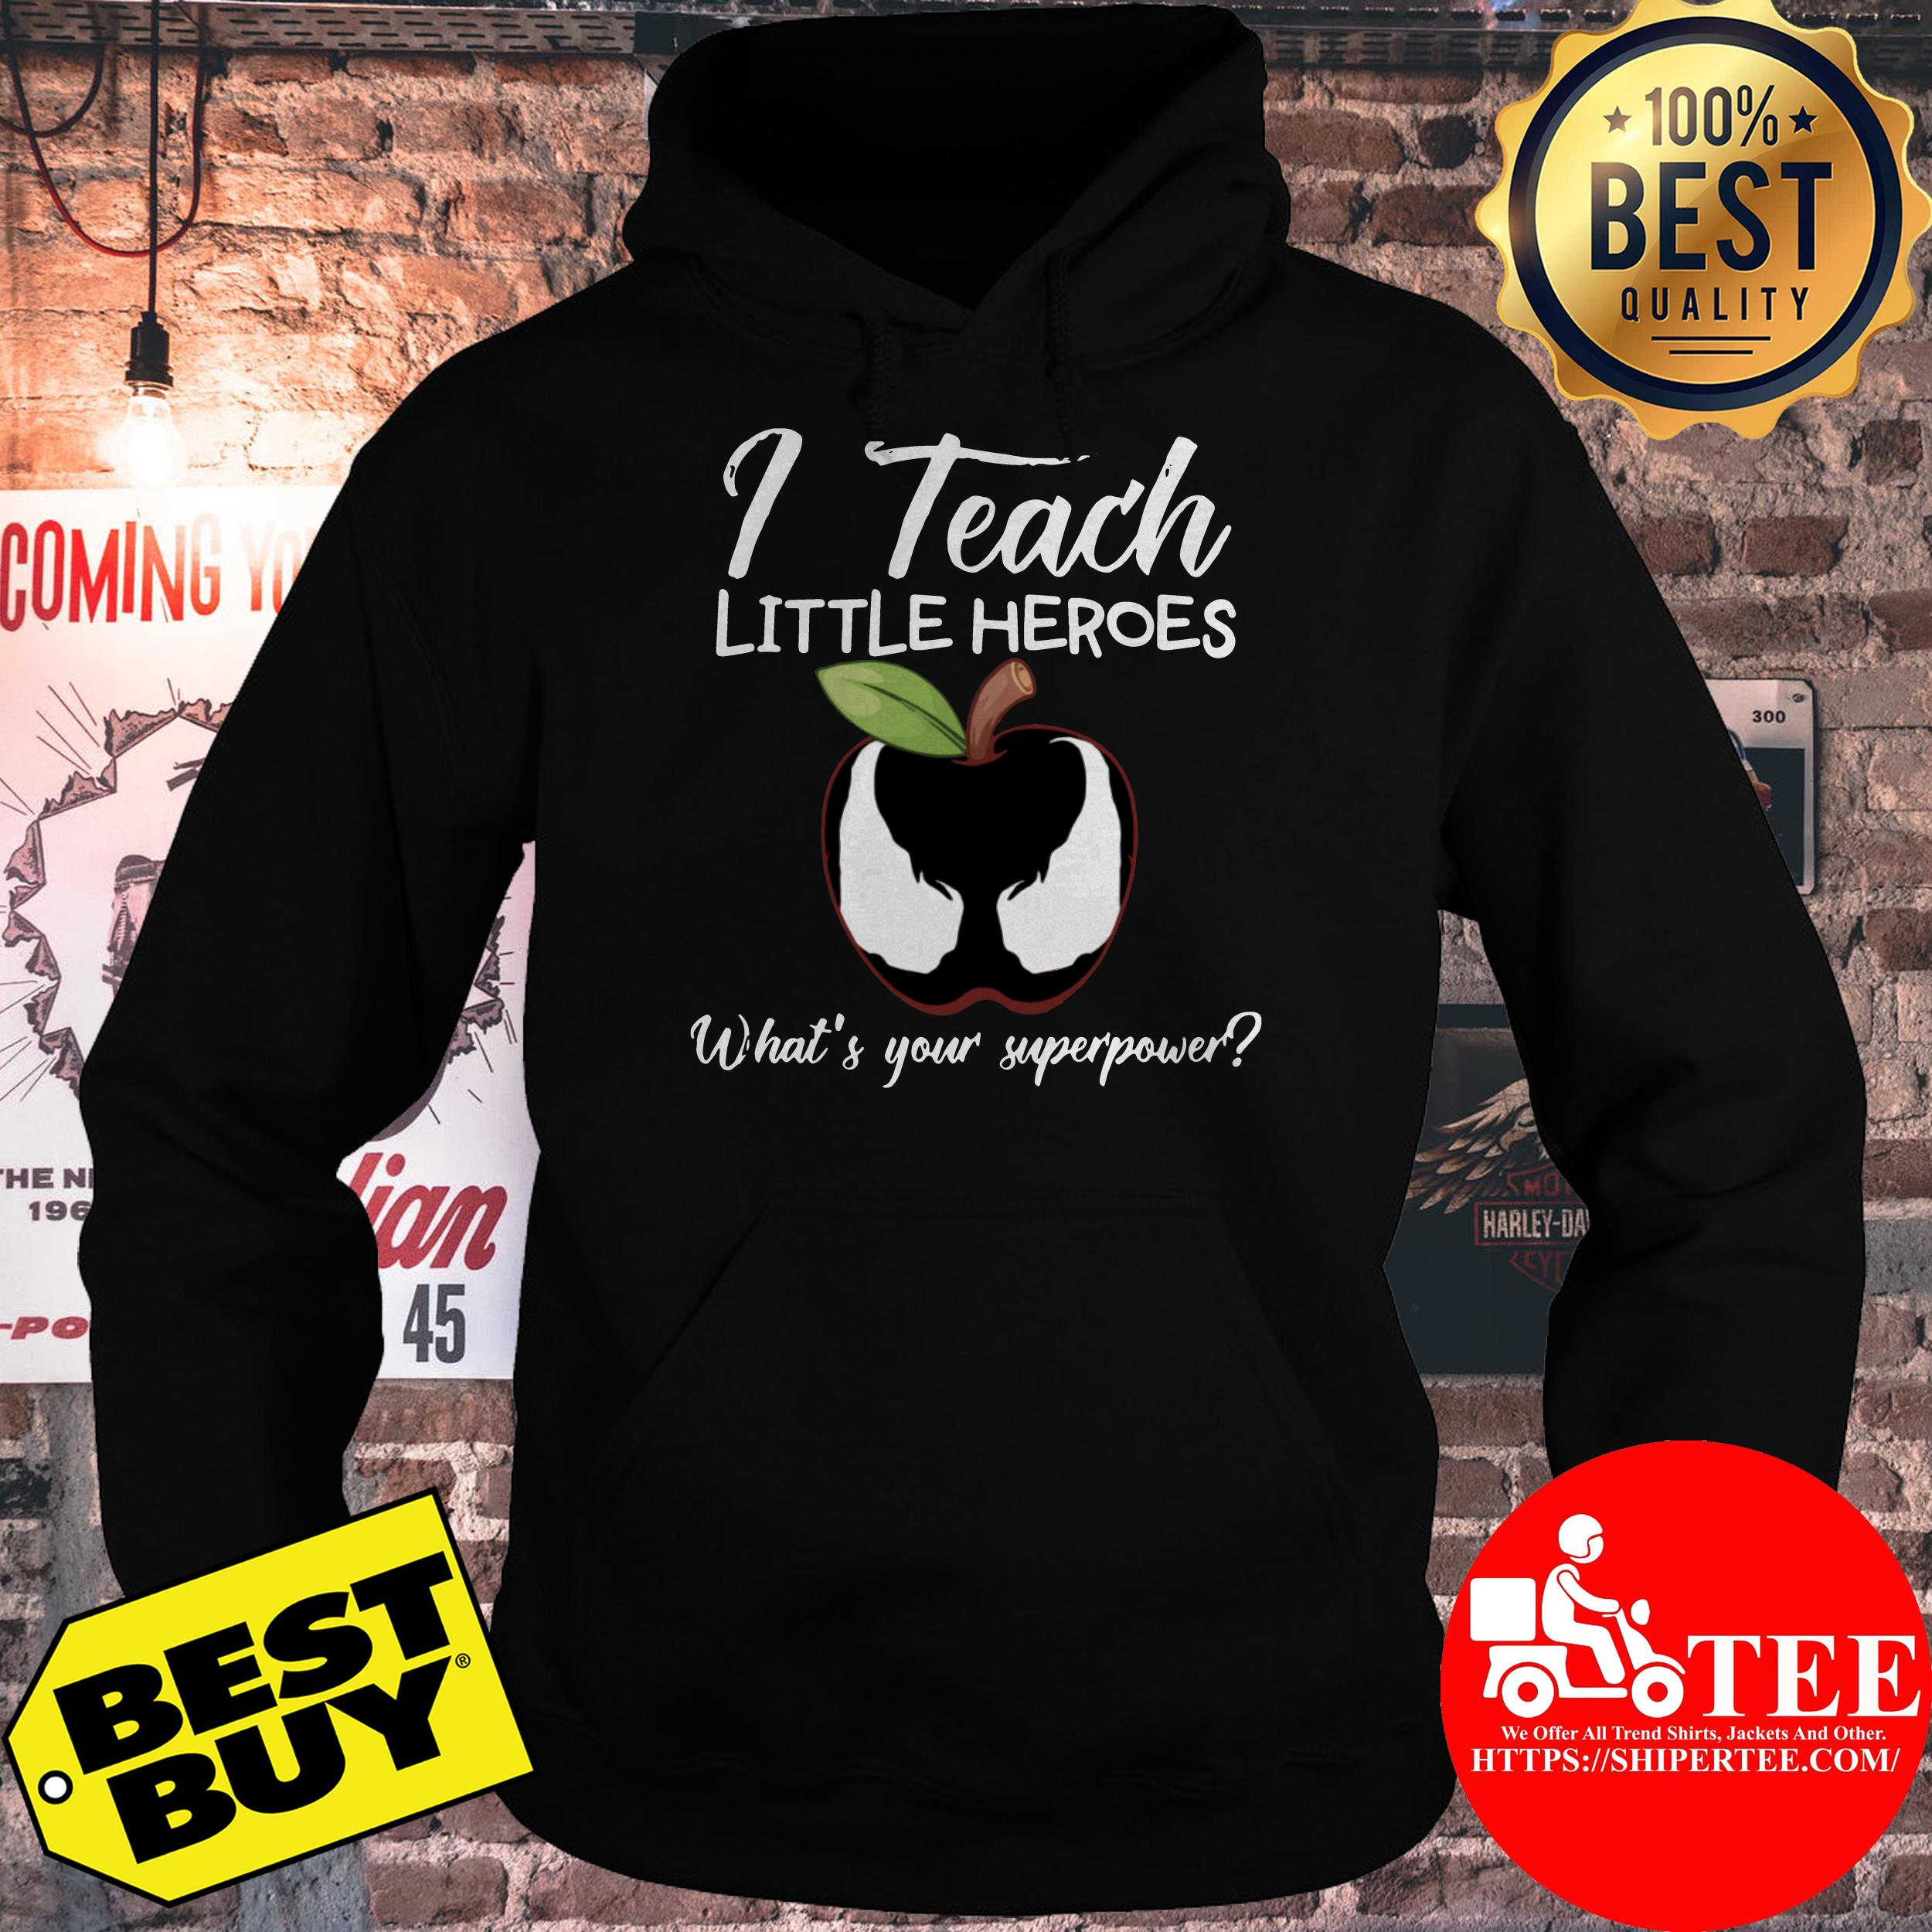 I teach little heroes what's your superpower hoodie